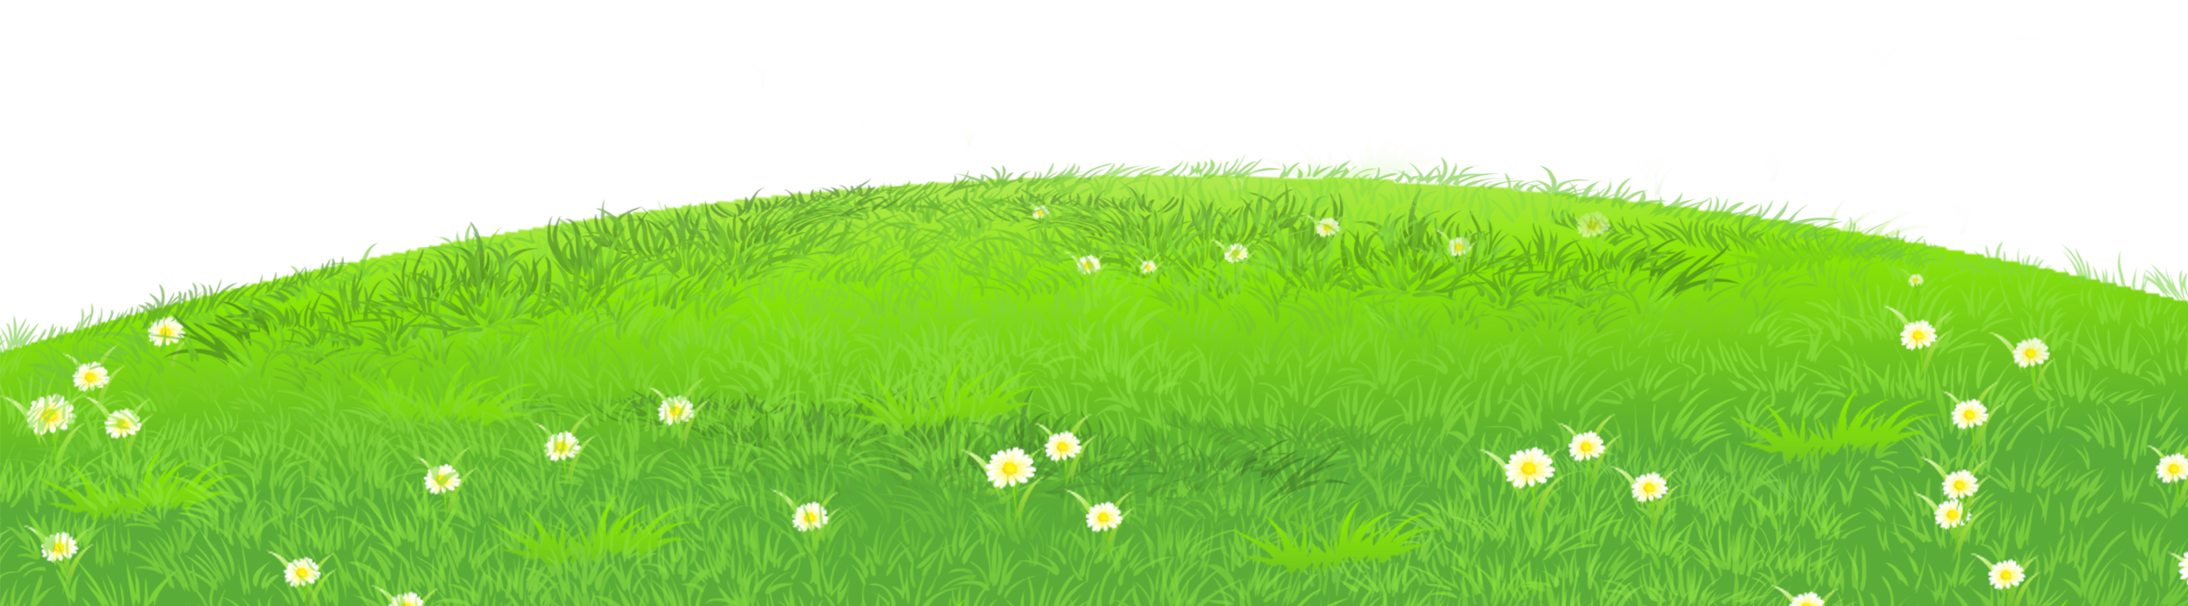 Field clipart field wildflower. Free grass cliparts download